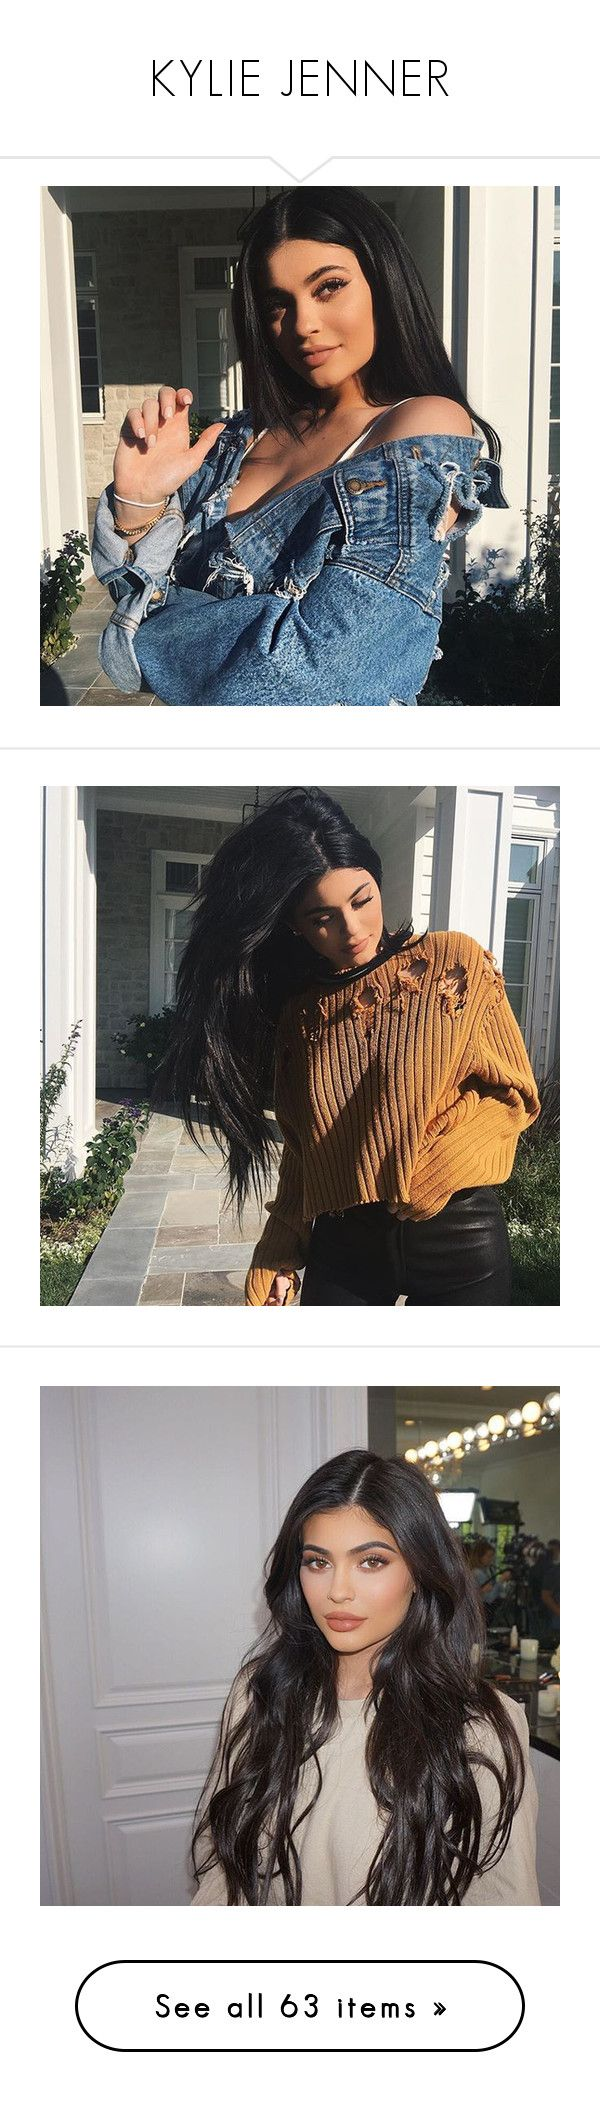 """""""KYLIE JENNER"""" by bruna-cortes ❤ liked on Polyvore featuring home, home decor, kylie jenner, beauty products, makeup, pics, topshop, swimwear, bikinis and bikini bottoms"""